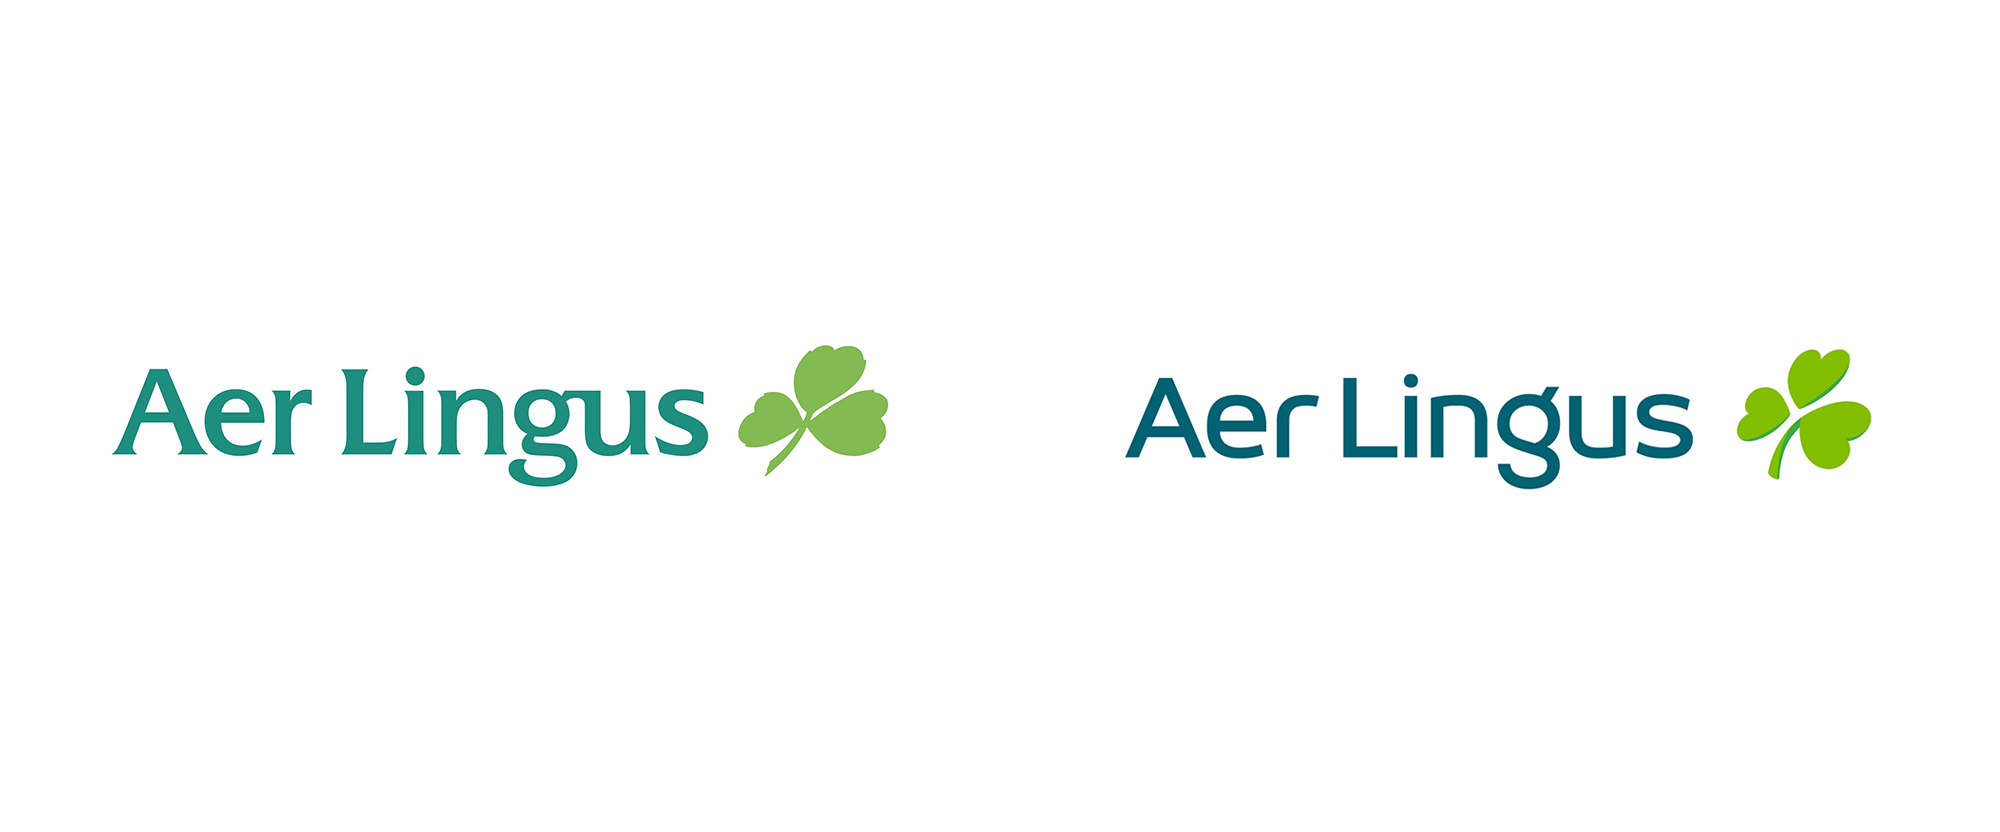 Brand New: New Logo, Identity, and Livery for Aer Lingus by Lippincott.